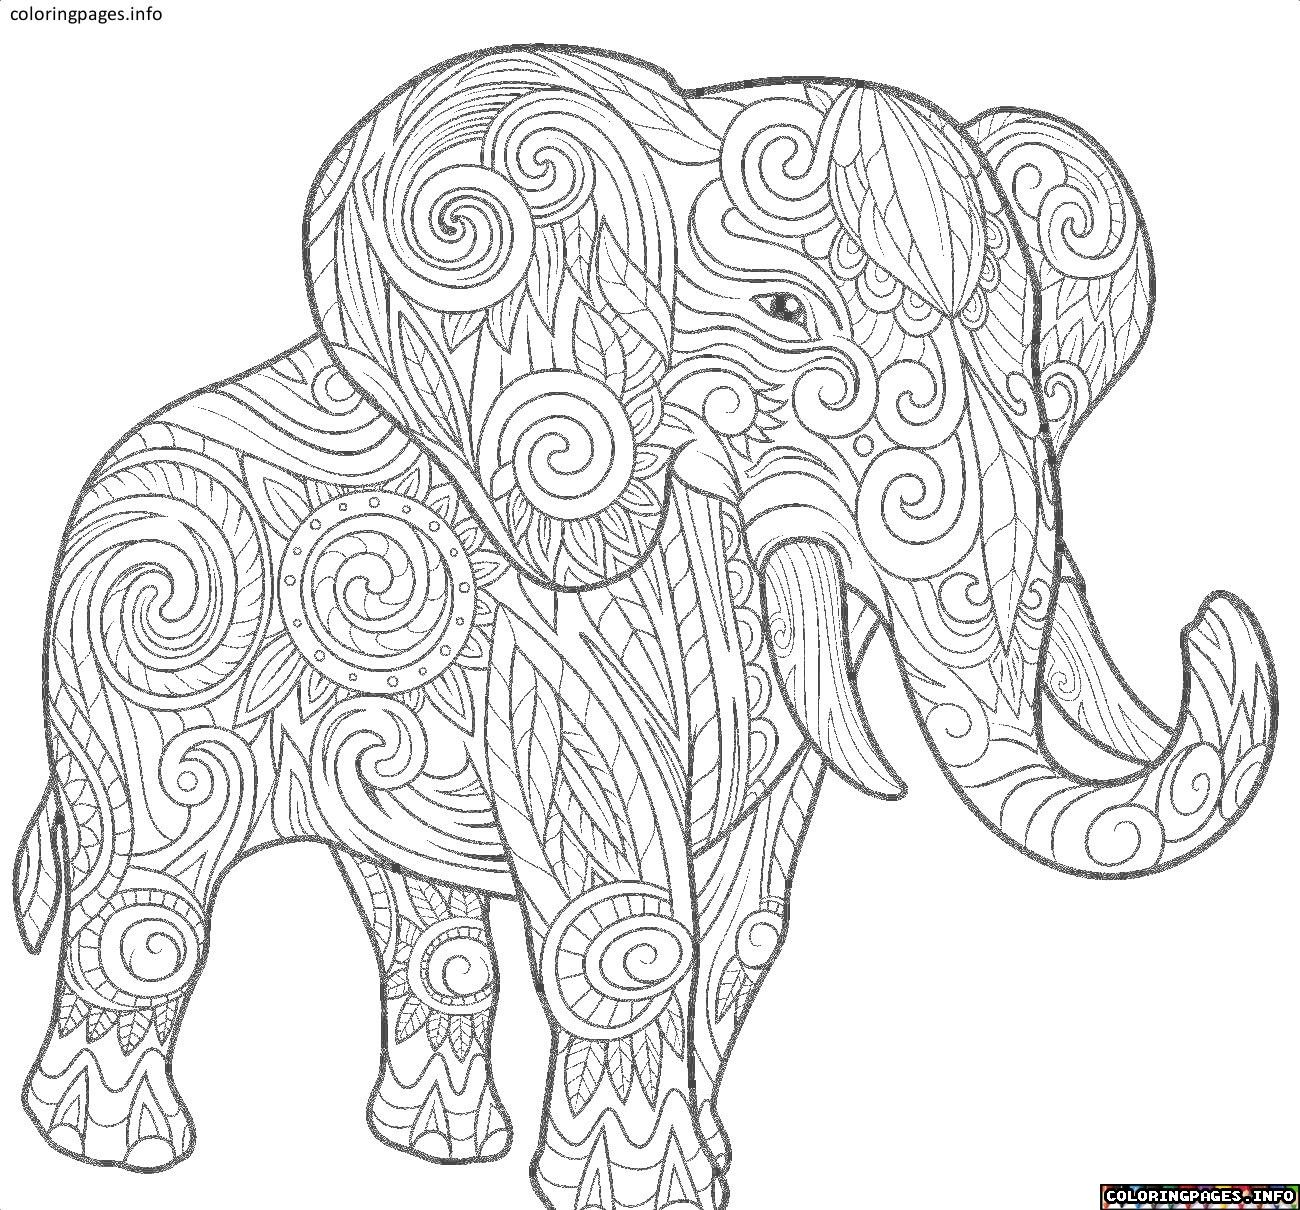 Awesome Elephant Mandala Coloring Pages Design Printable Coloring Sheet Malvorlagen Tiere Mandala Malvorlagen Malvorlagen Zum Ausdrucken